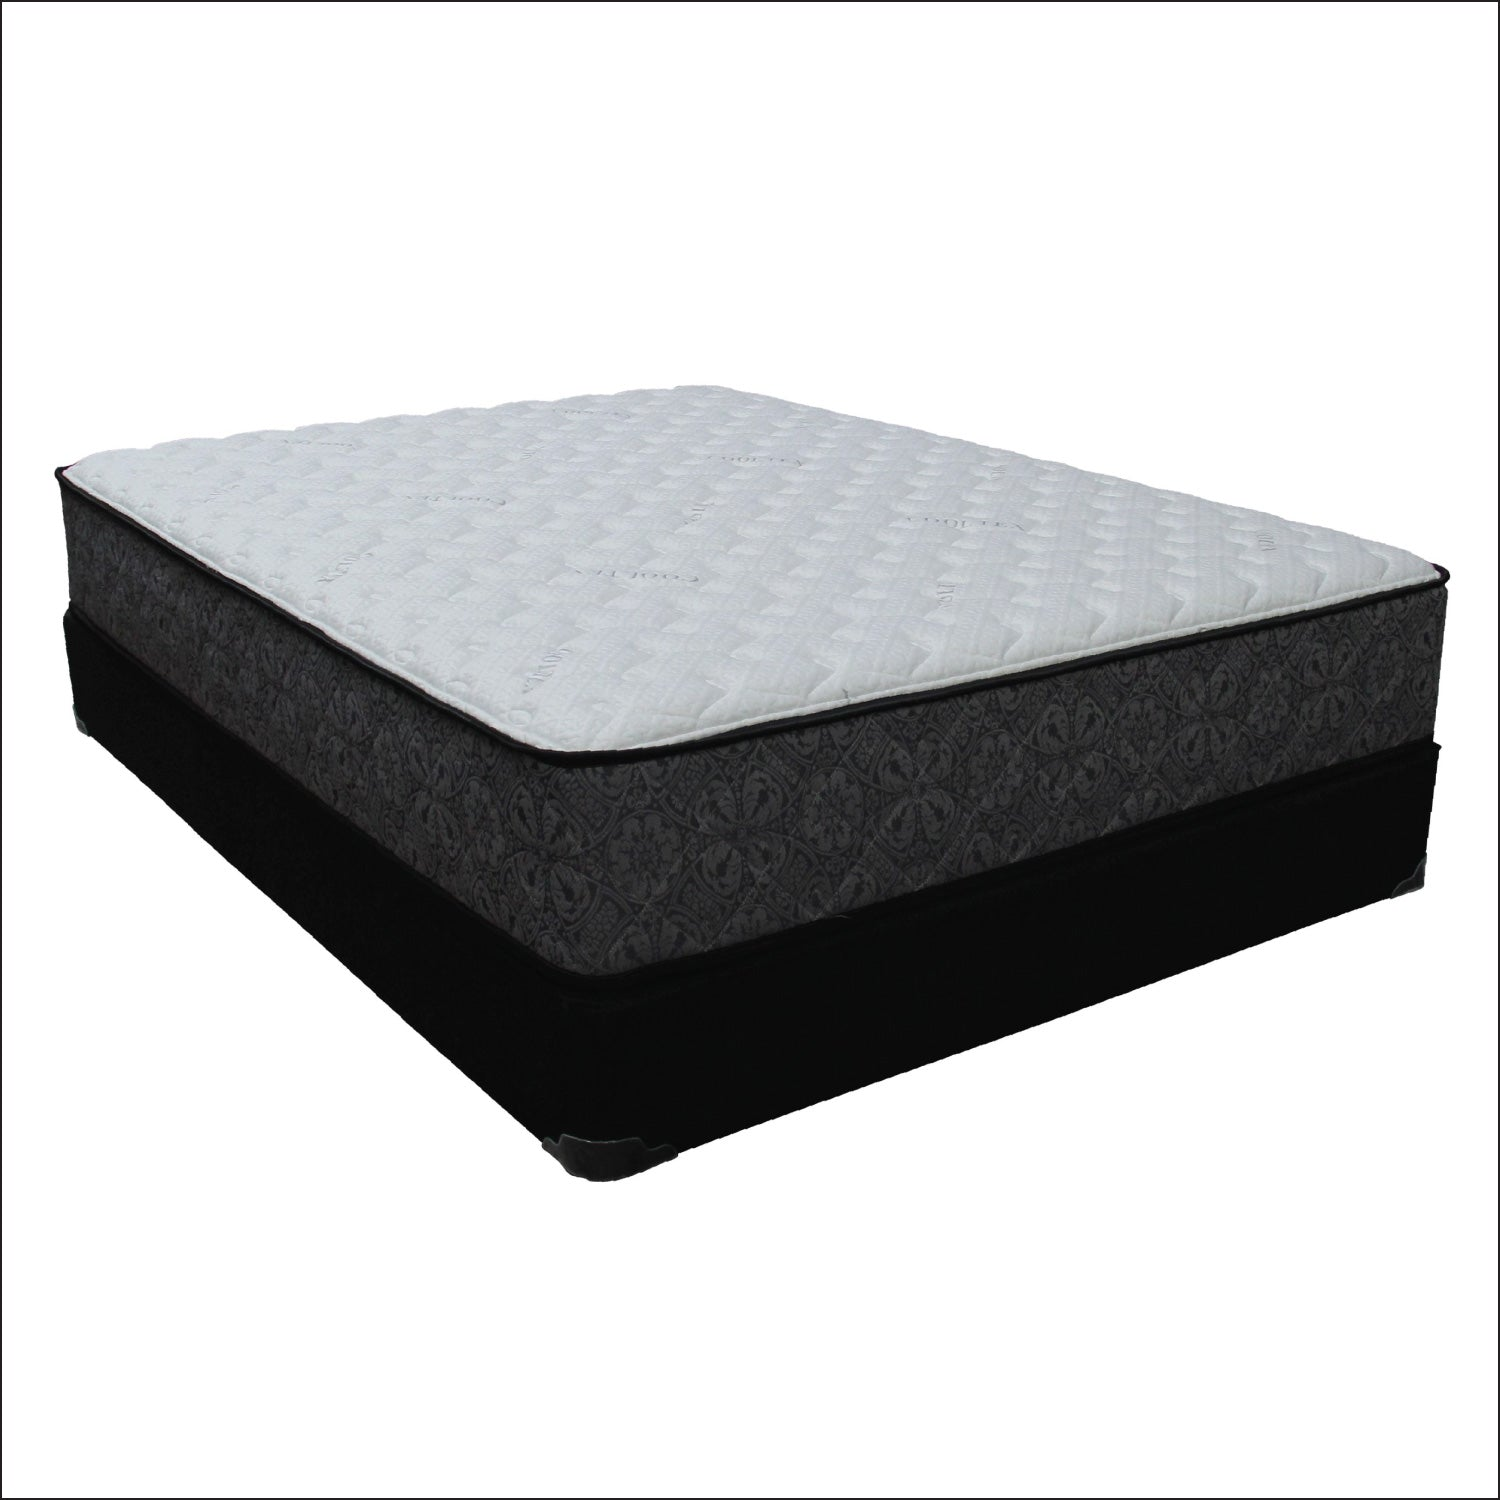 "PG 1300 12"" Extra Firm Hybrid Mattress"